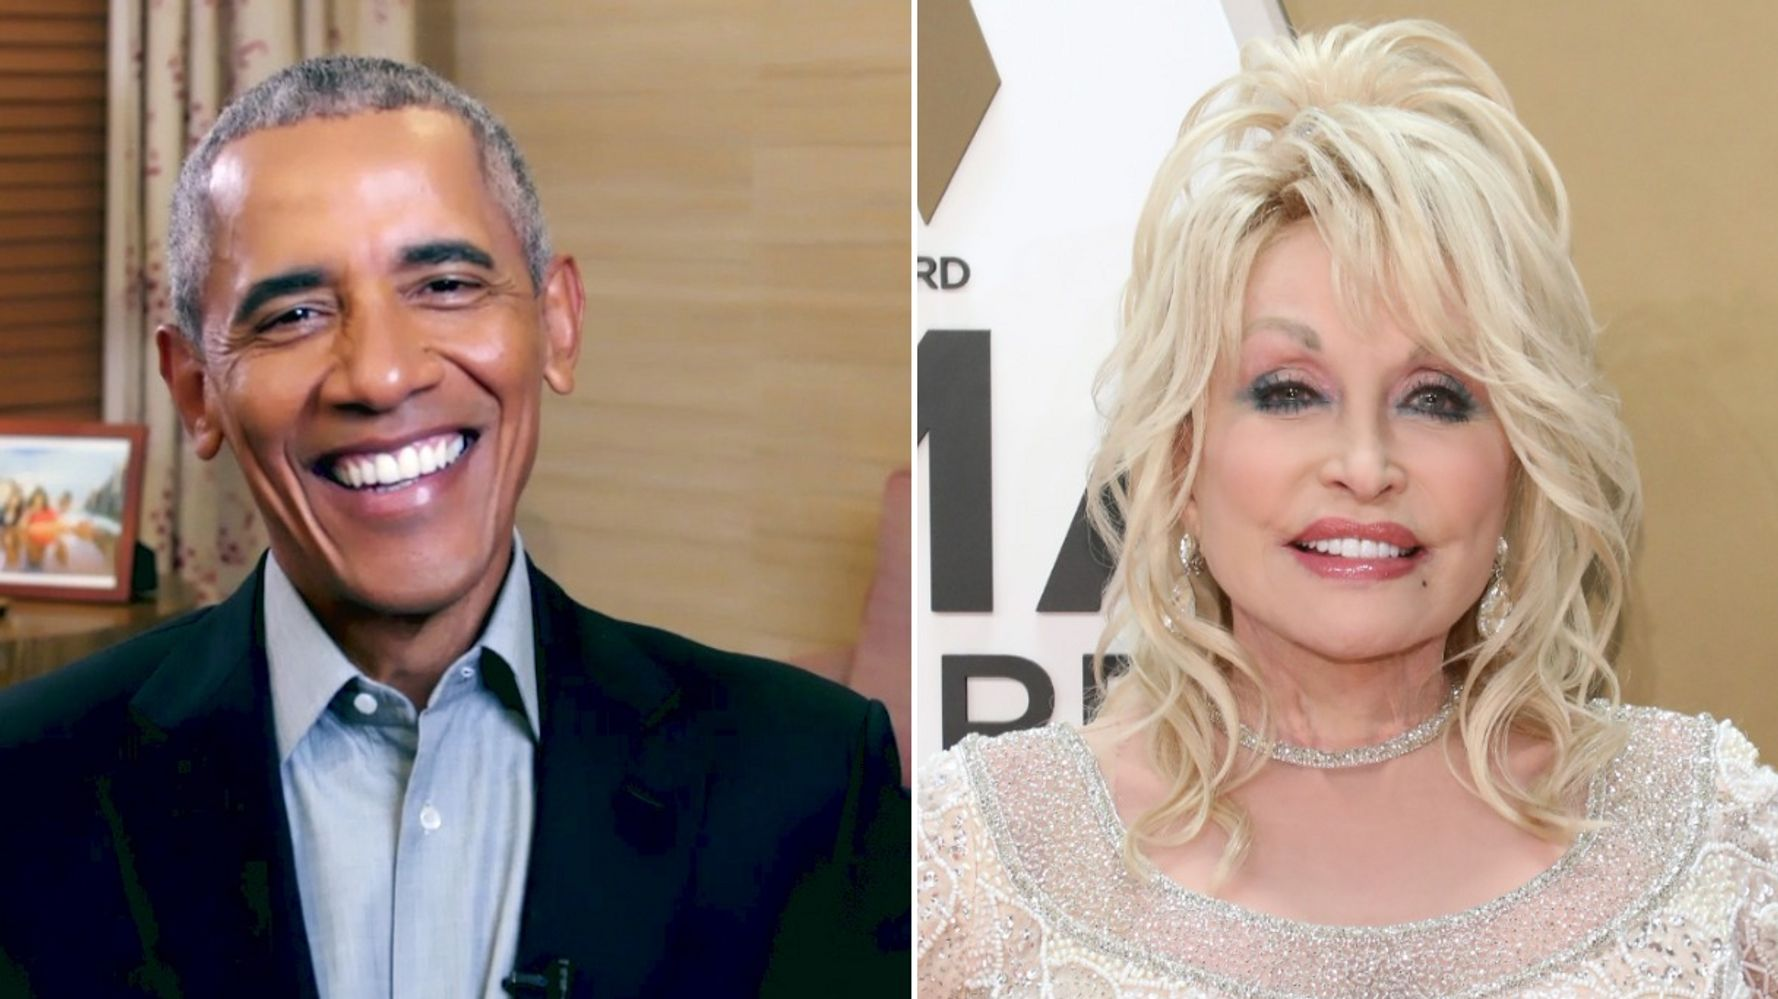 WATCH: Barack Obama says not giving Dolly Parton a Medal of Freedom was a 'mistake': 'She deserves one'